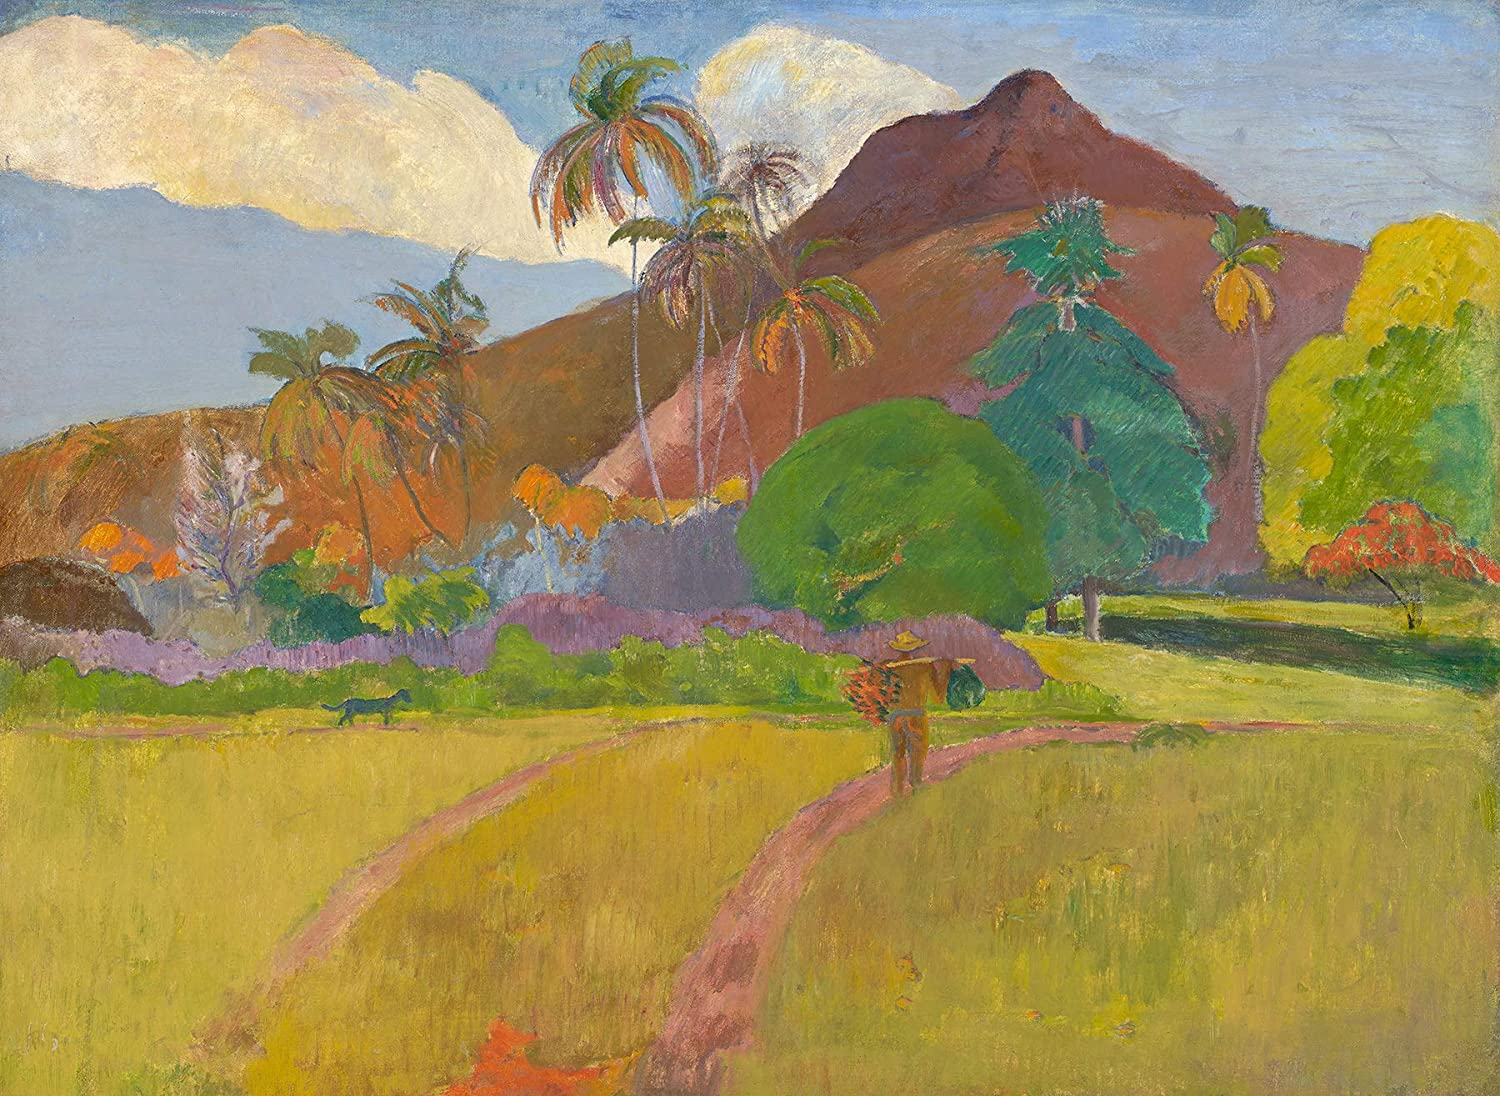 Ta Matete by Paul Gauguin Giclee Fine ArtPrint Reproduction on Canvas